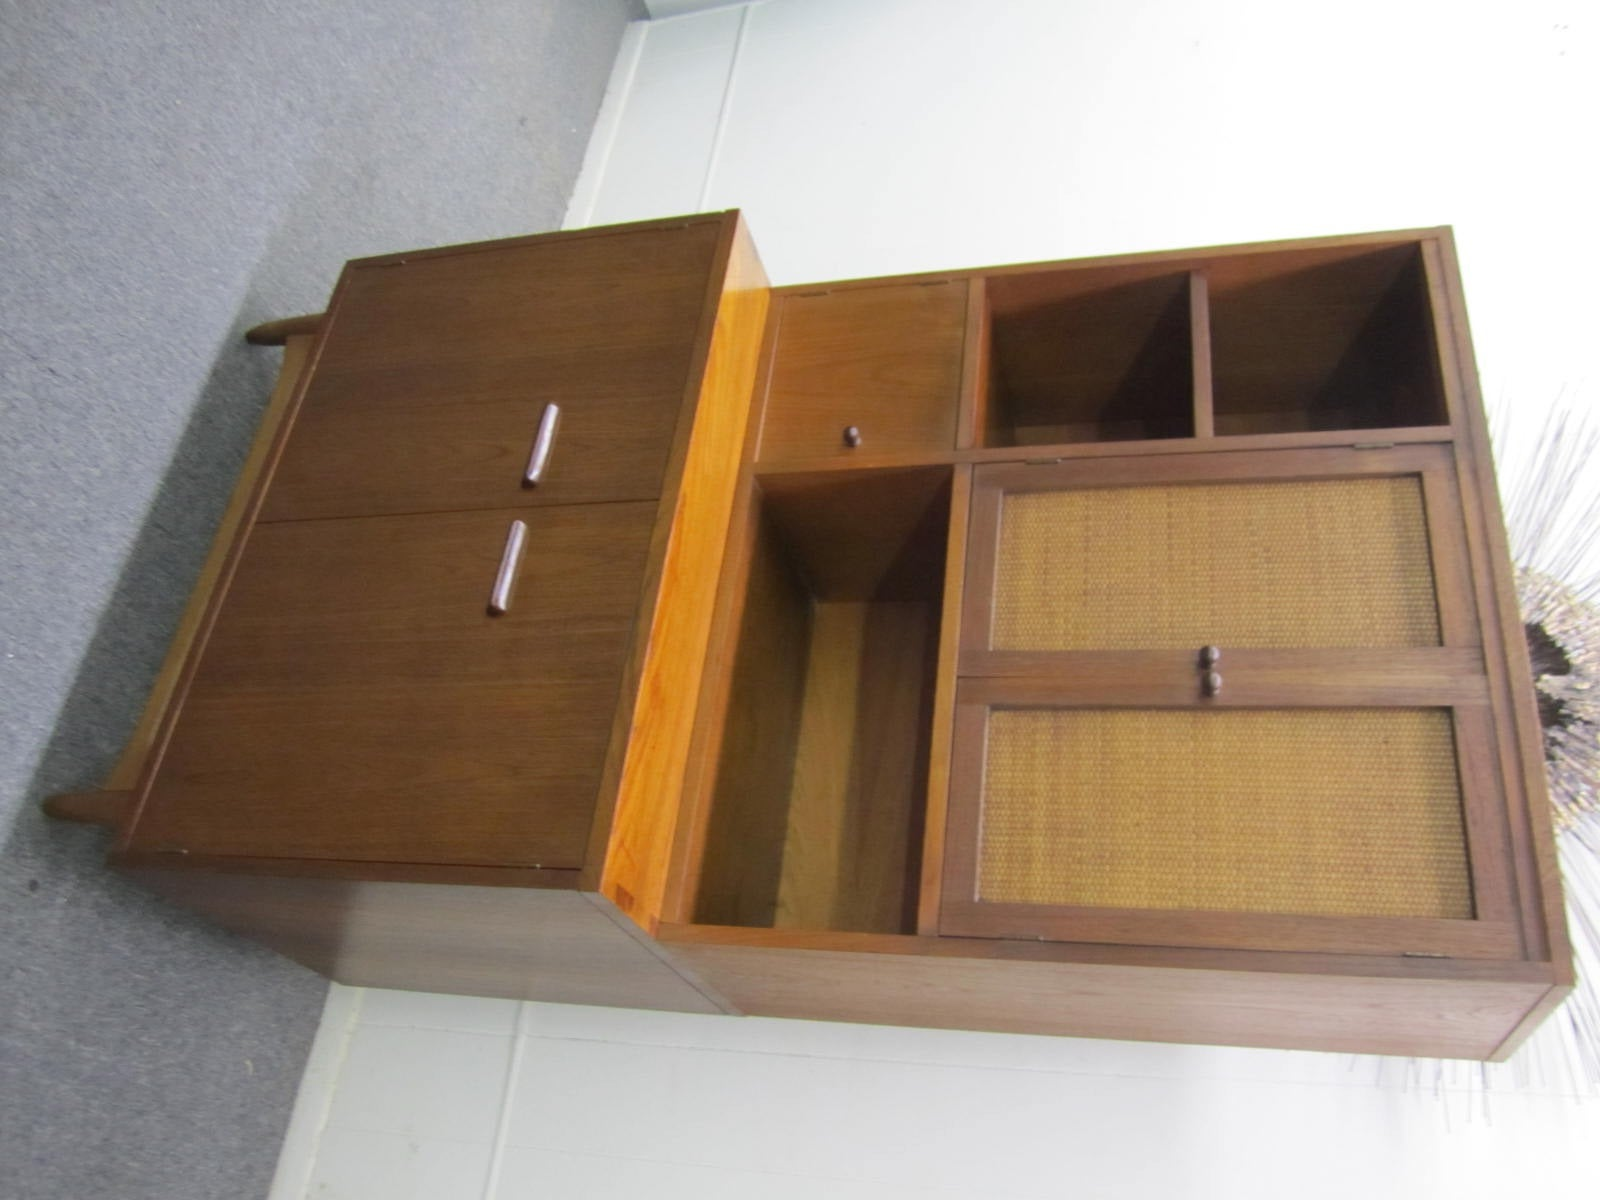 Rare 2 piece cabinet with separate hutch- part of the Acclaim series for Lane.  Great storage options for in the kitchen or any living space with tons of cubbies and one drawer.  We especially like the caned front doors on the removable hutch.  Put